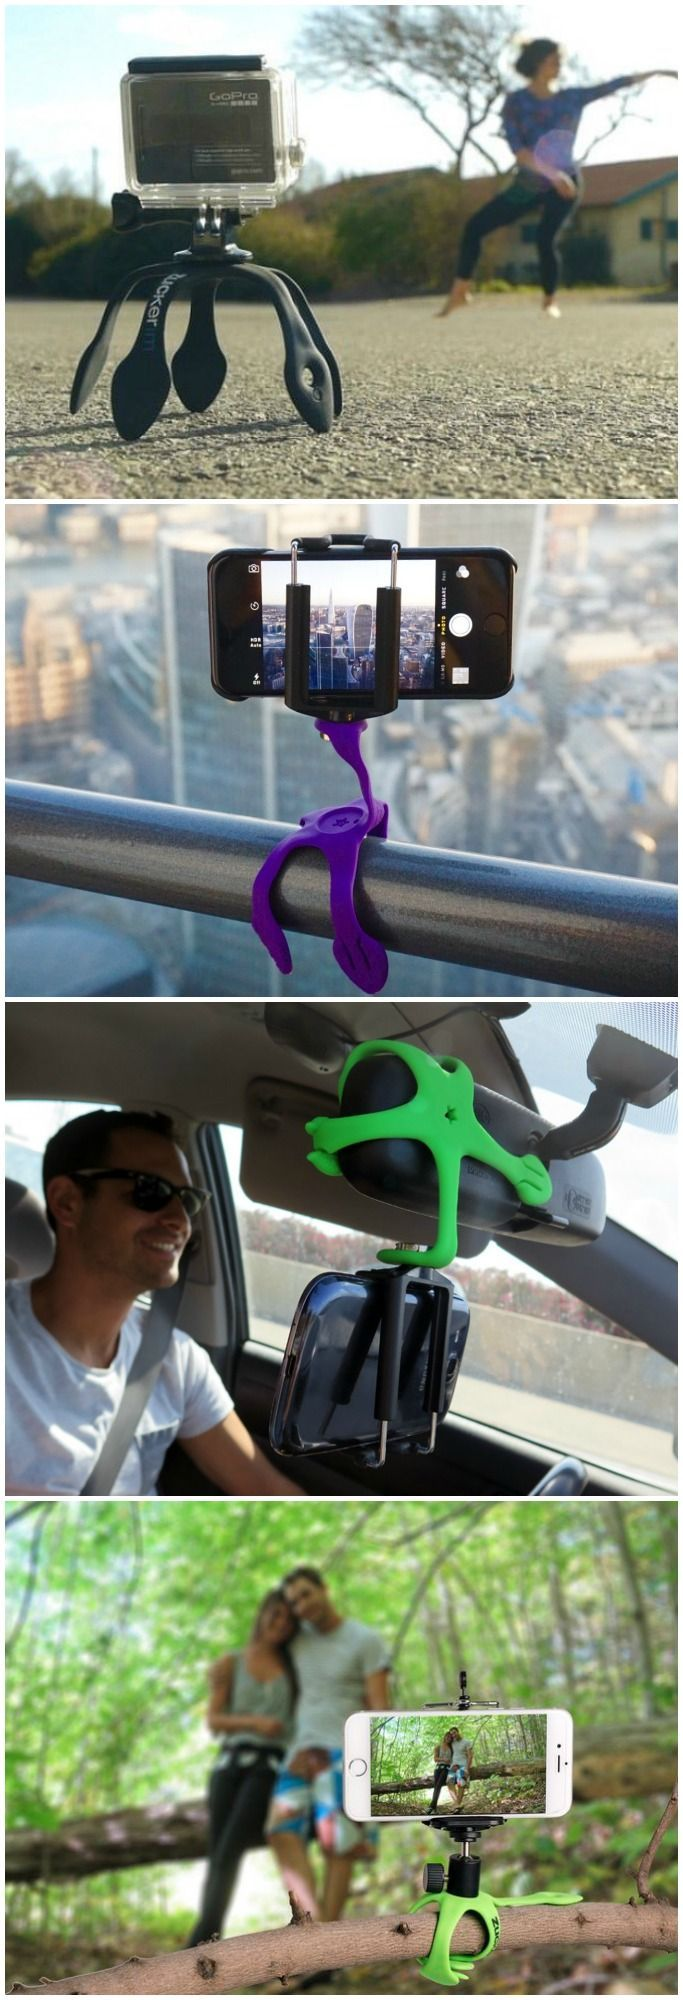 Gekkopod Mobile Smartphone Mount - The world's most versatile smartphone & GoPro mount.